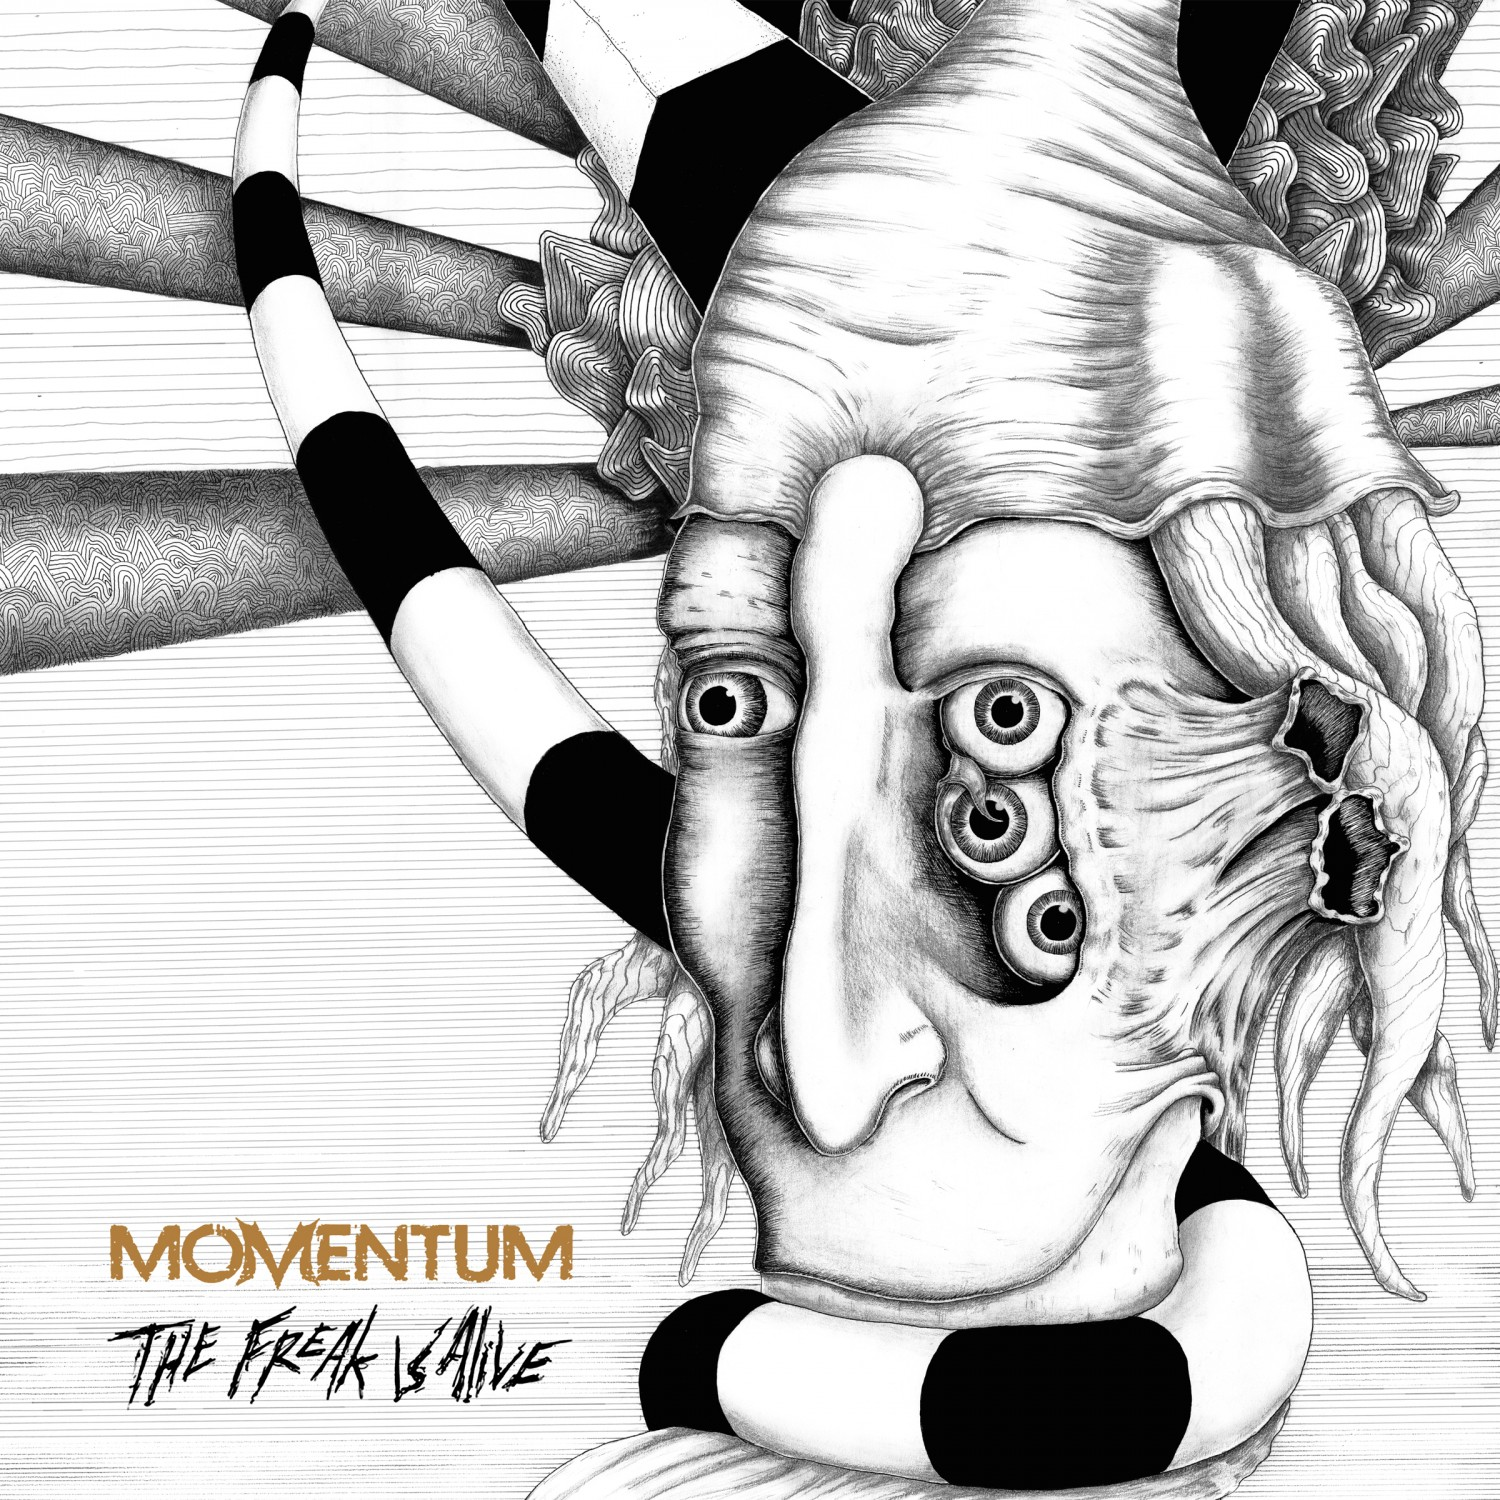 Momentum – The Freak Is Alive